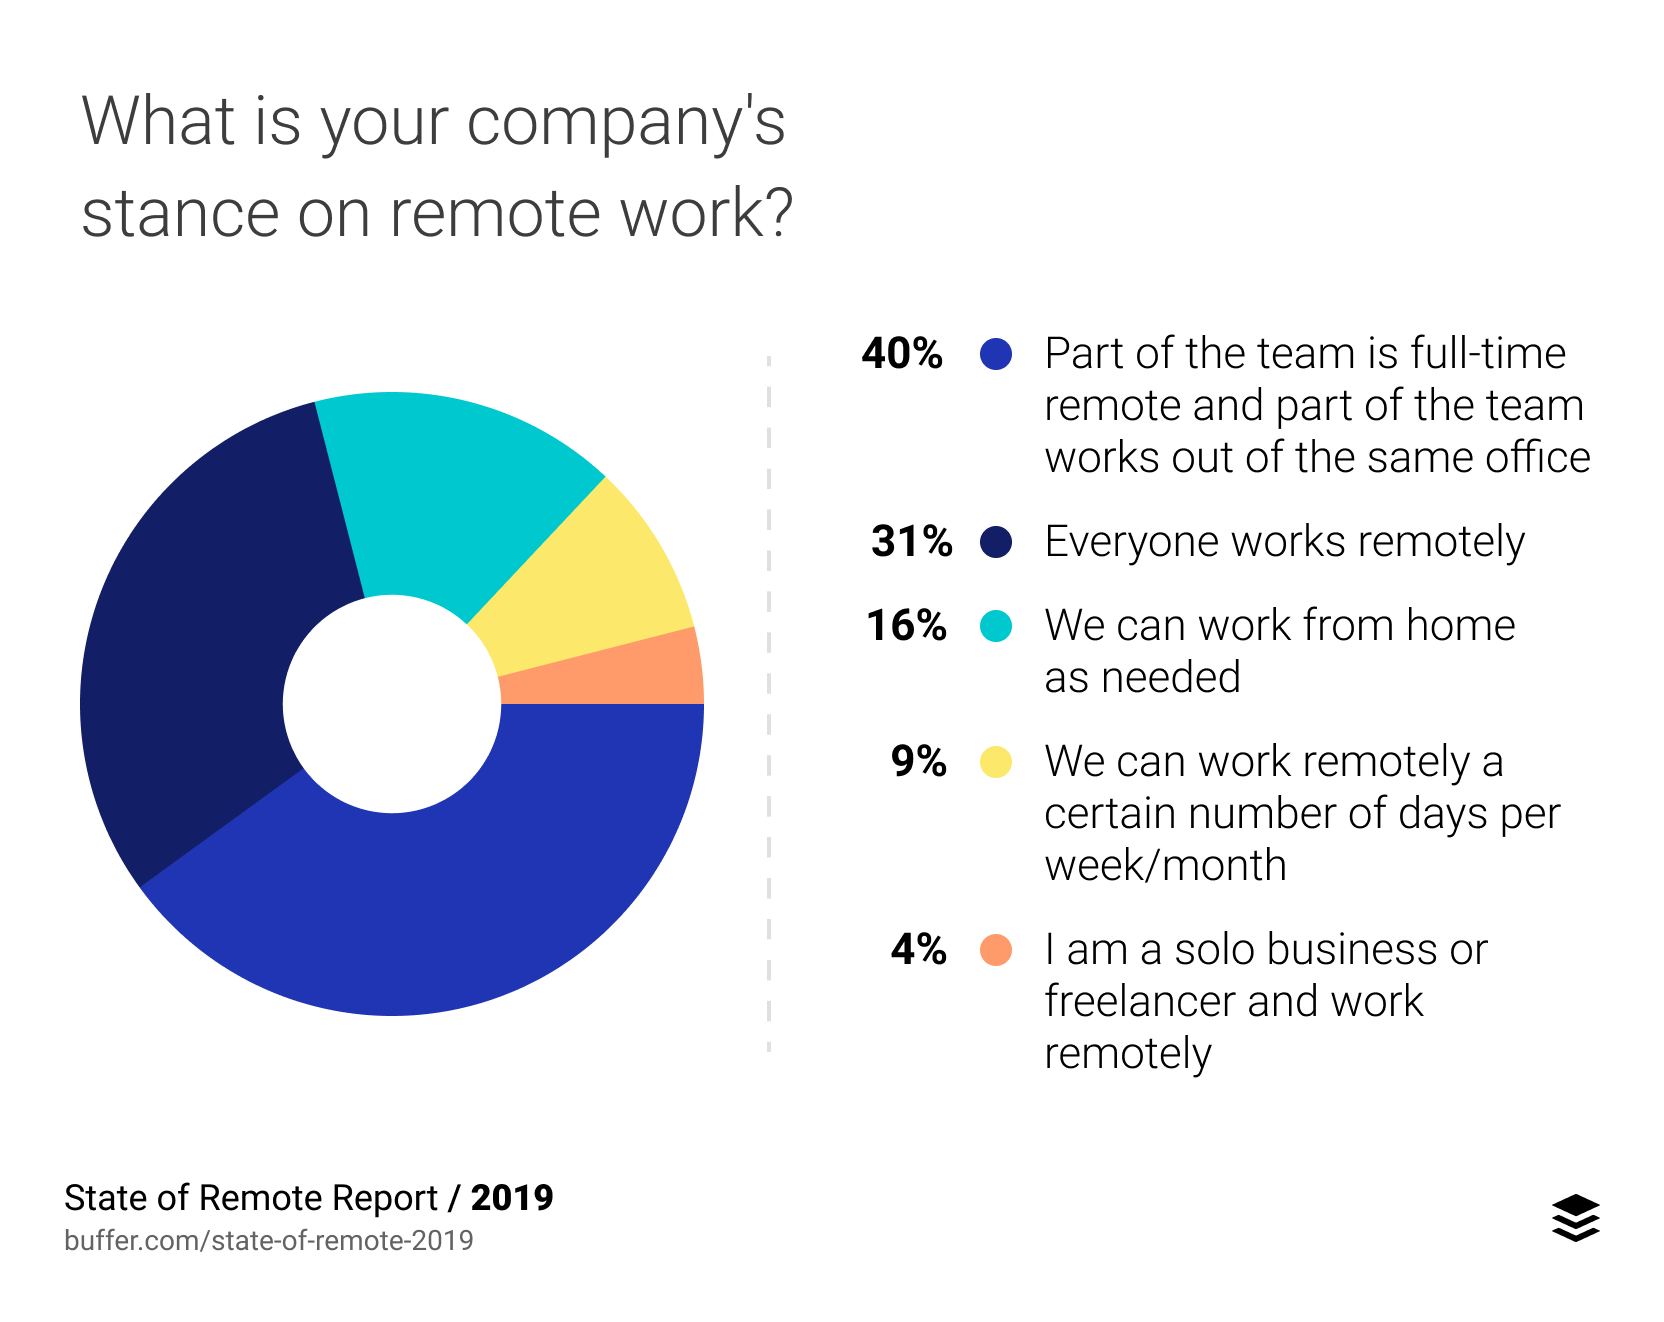 What is your company's stance on remote work